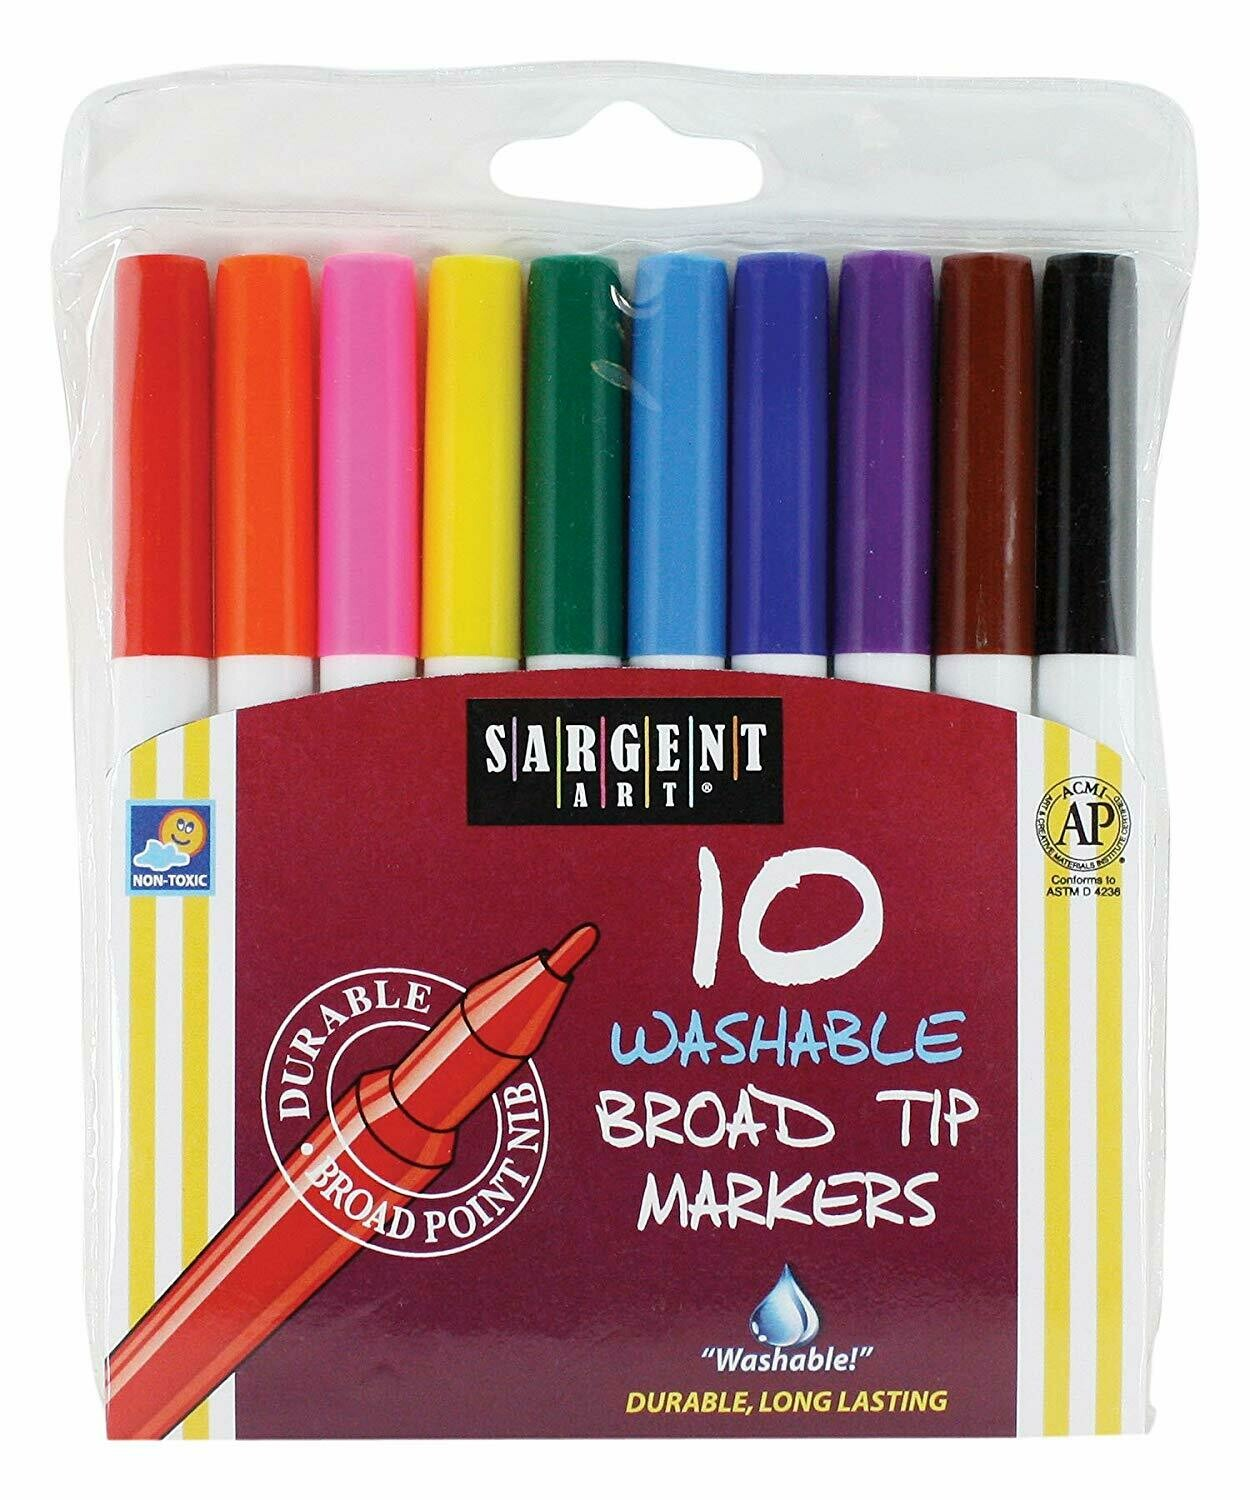 Sargent Art / 10-Count Washable Bullet Tip Broad Markers in a Pouch